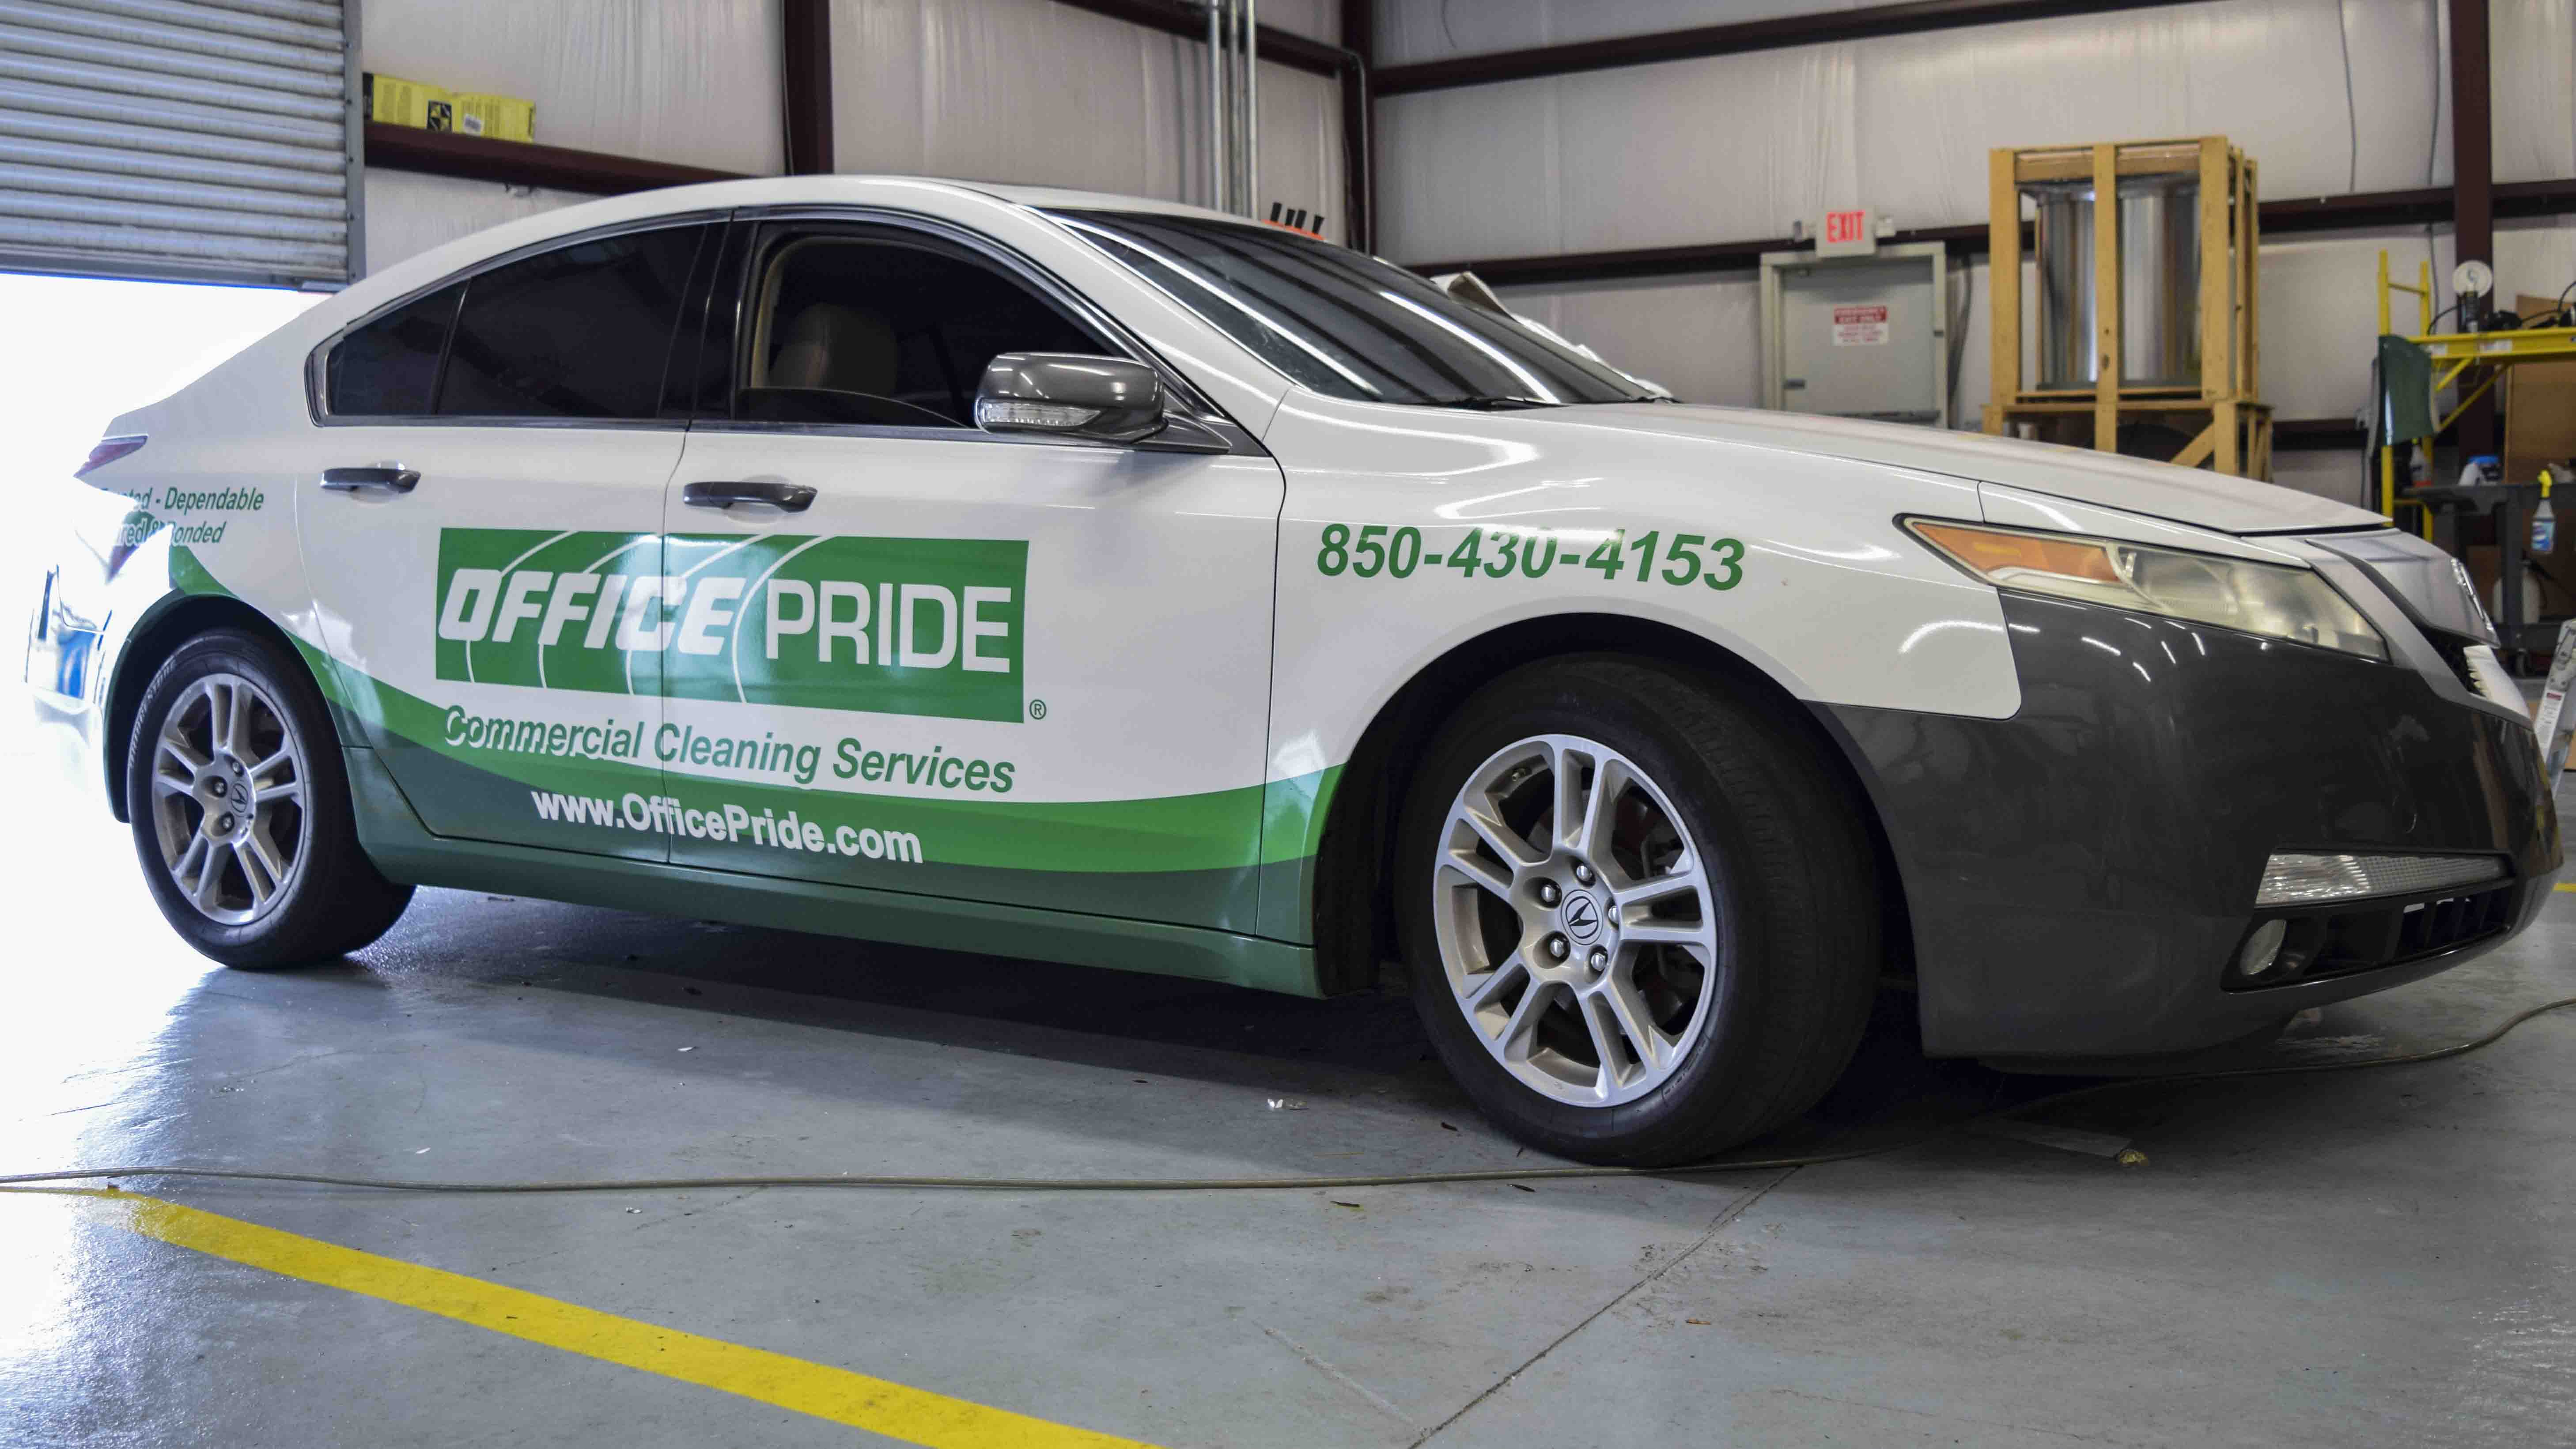 Pensacola Sign - Vehicle Wrap for Office Pride